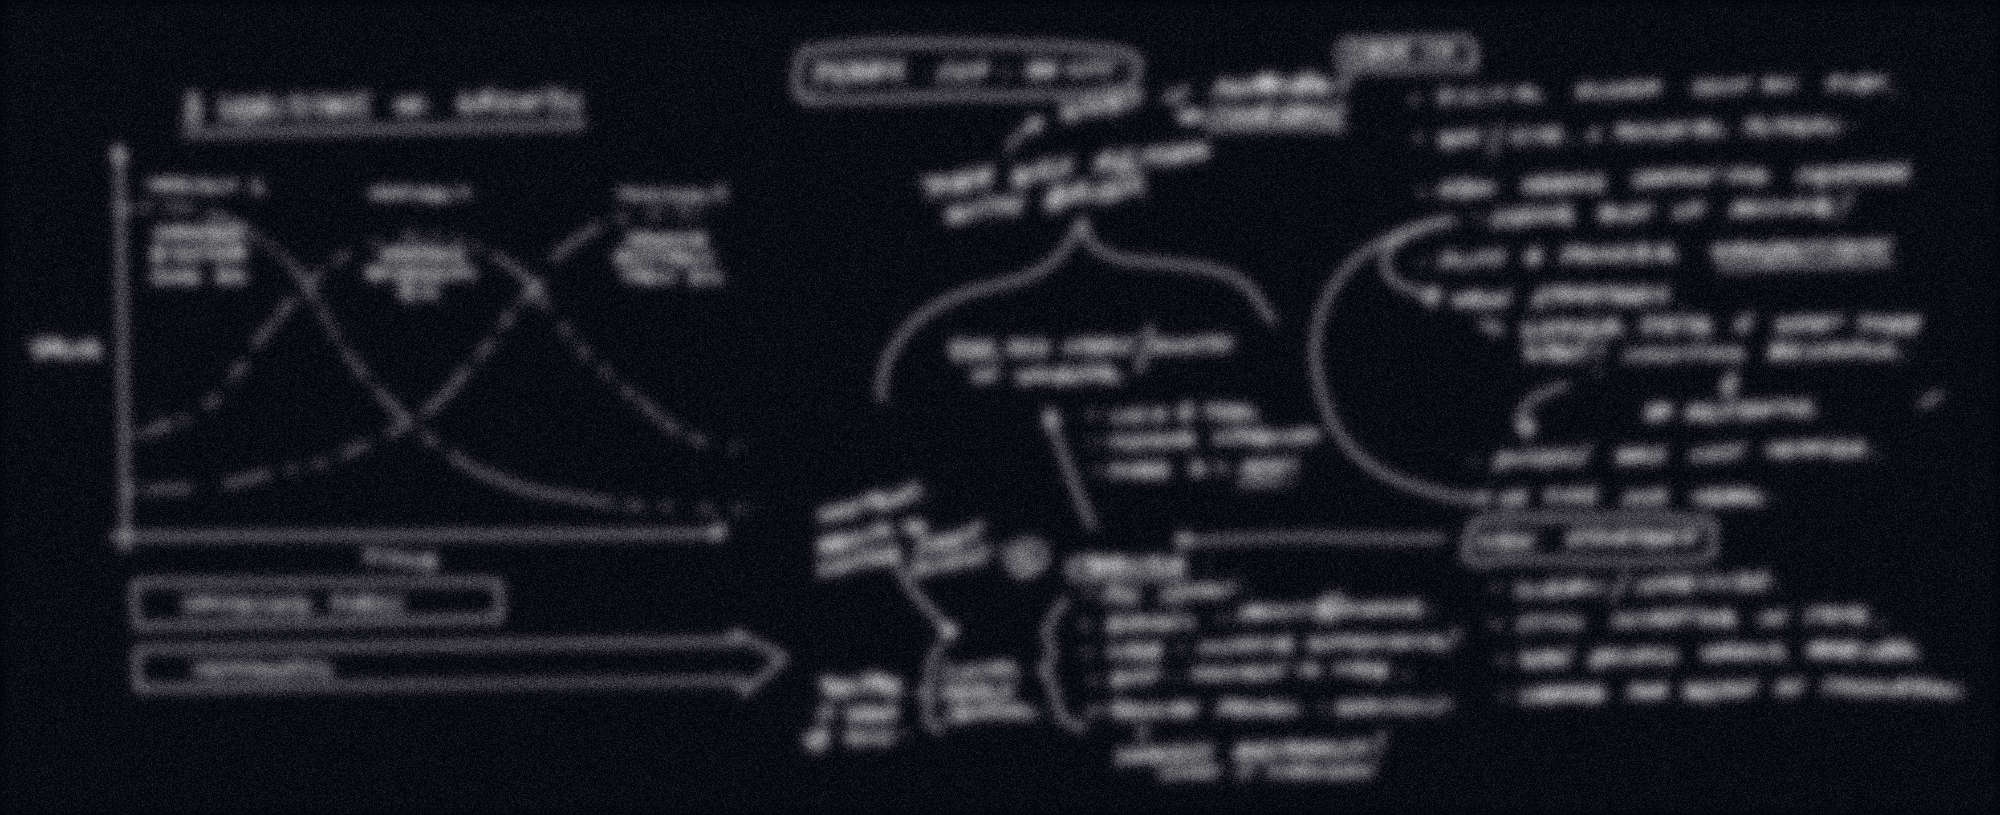 A redacted image of a project deliverable.